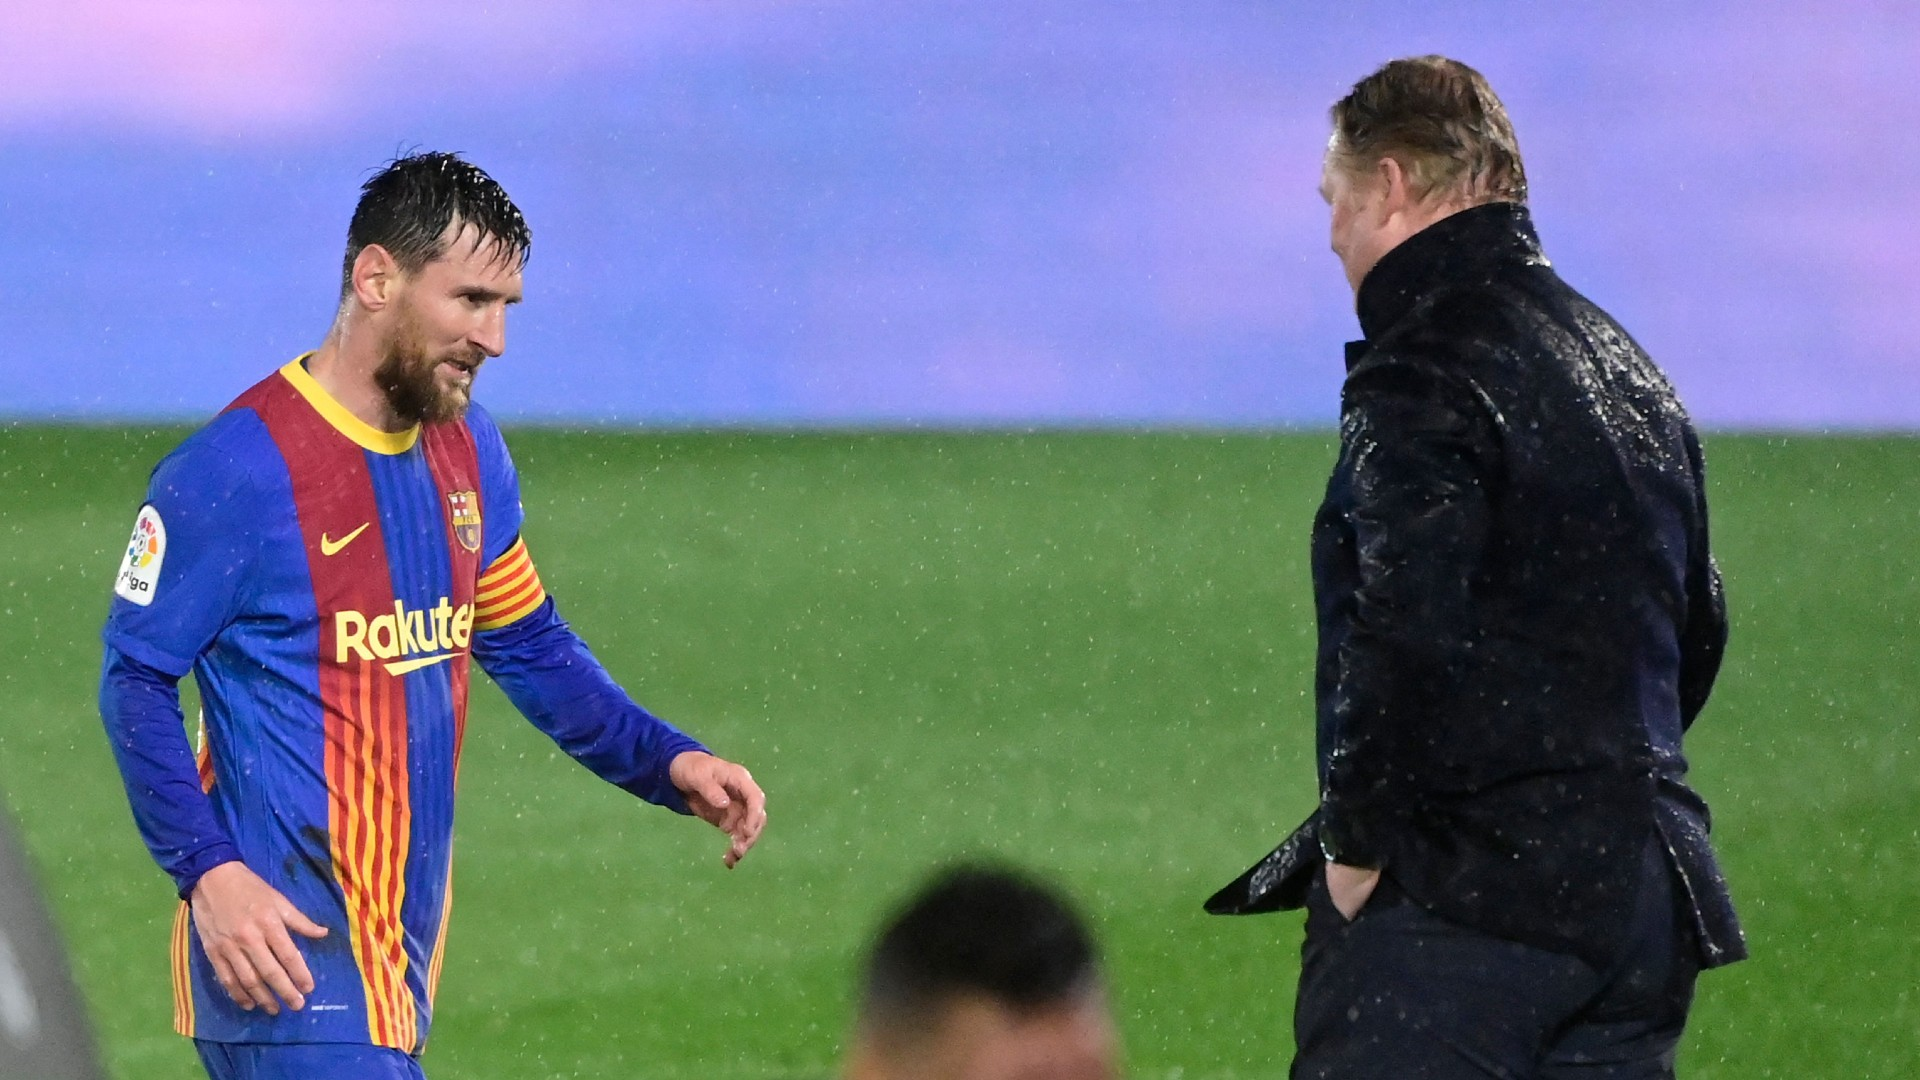 The promising Barcelona Messi has not played in his last Clasico